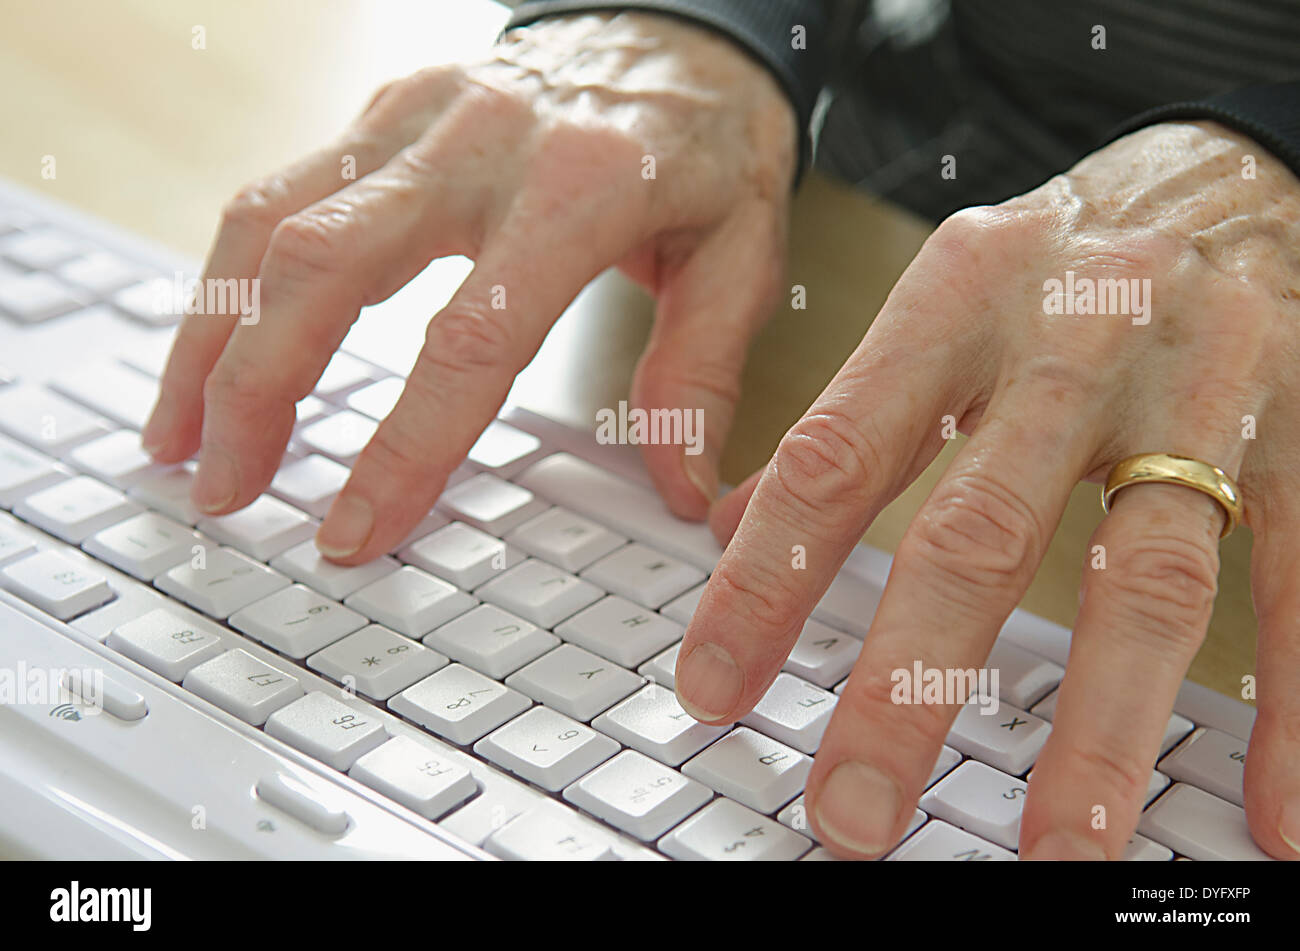 senior woman hands on computer keyboard - Stock Image